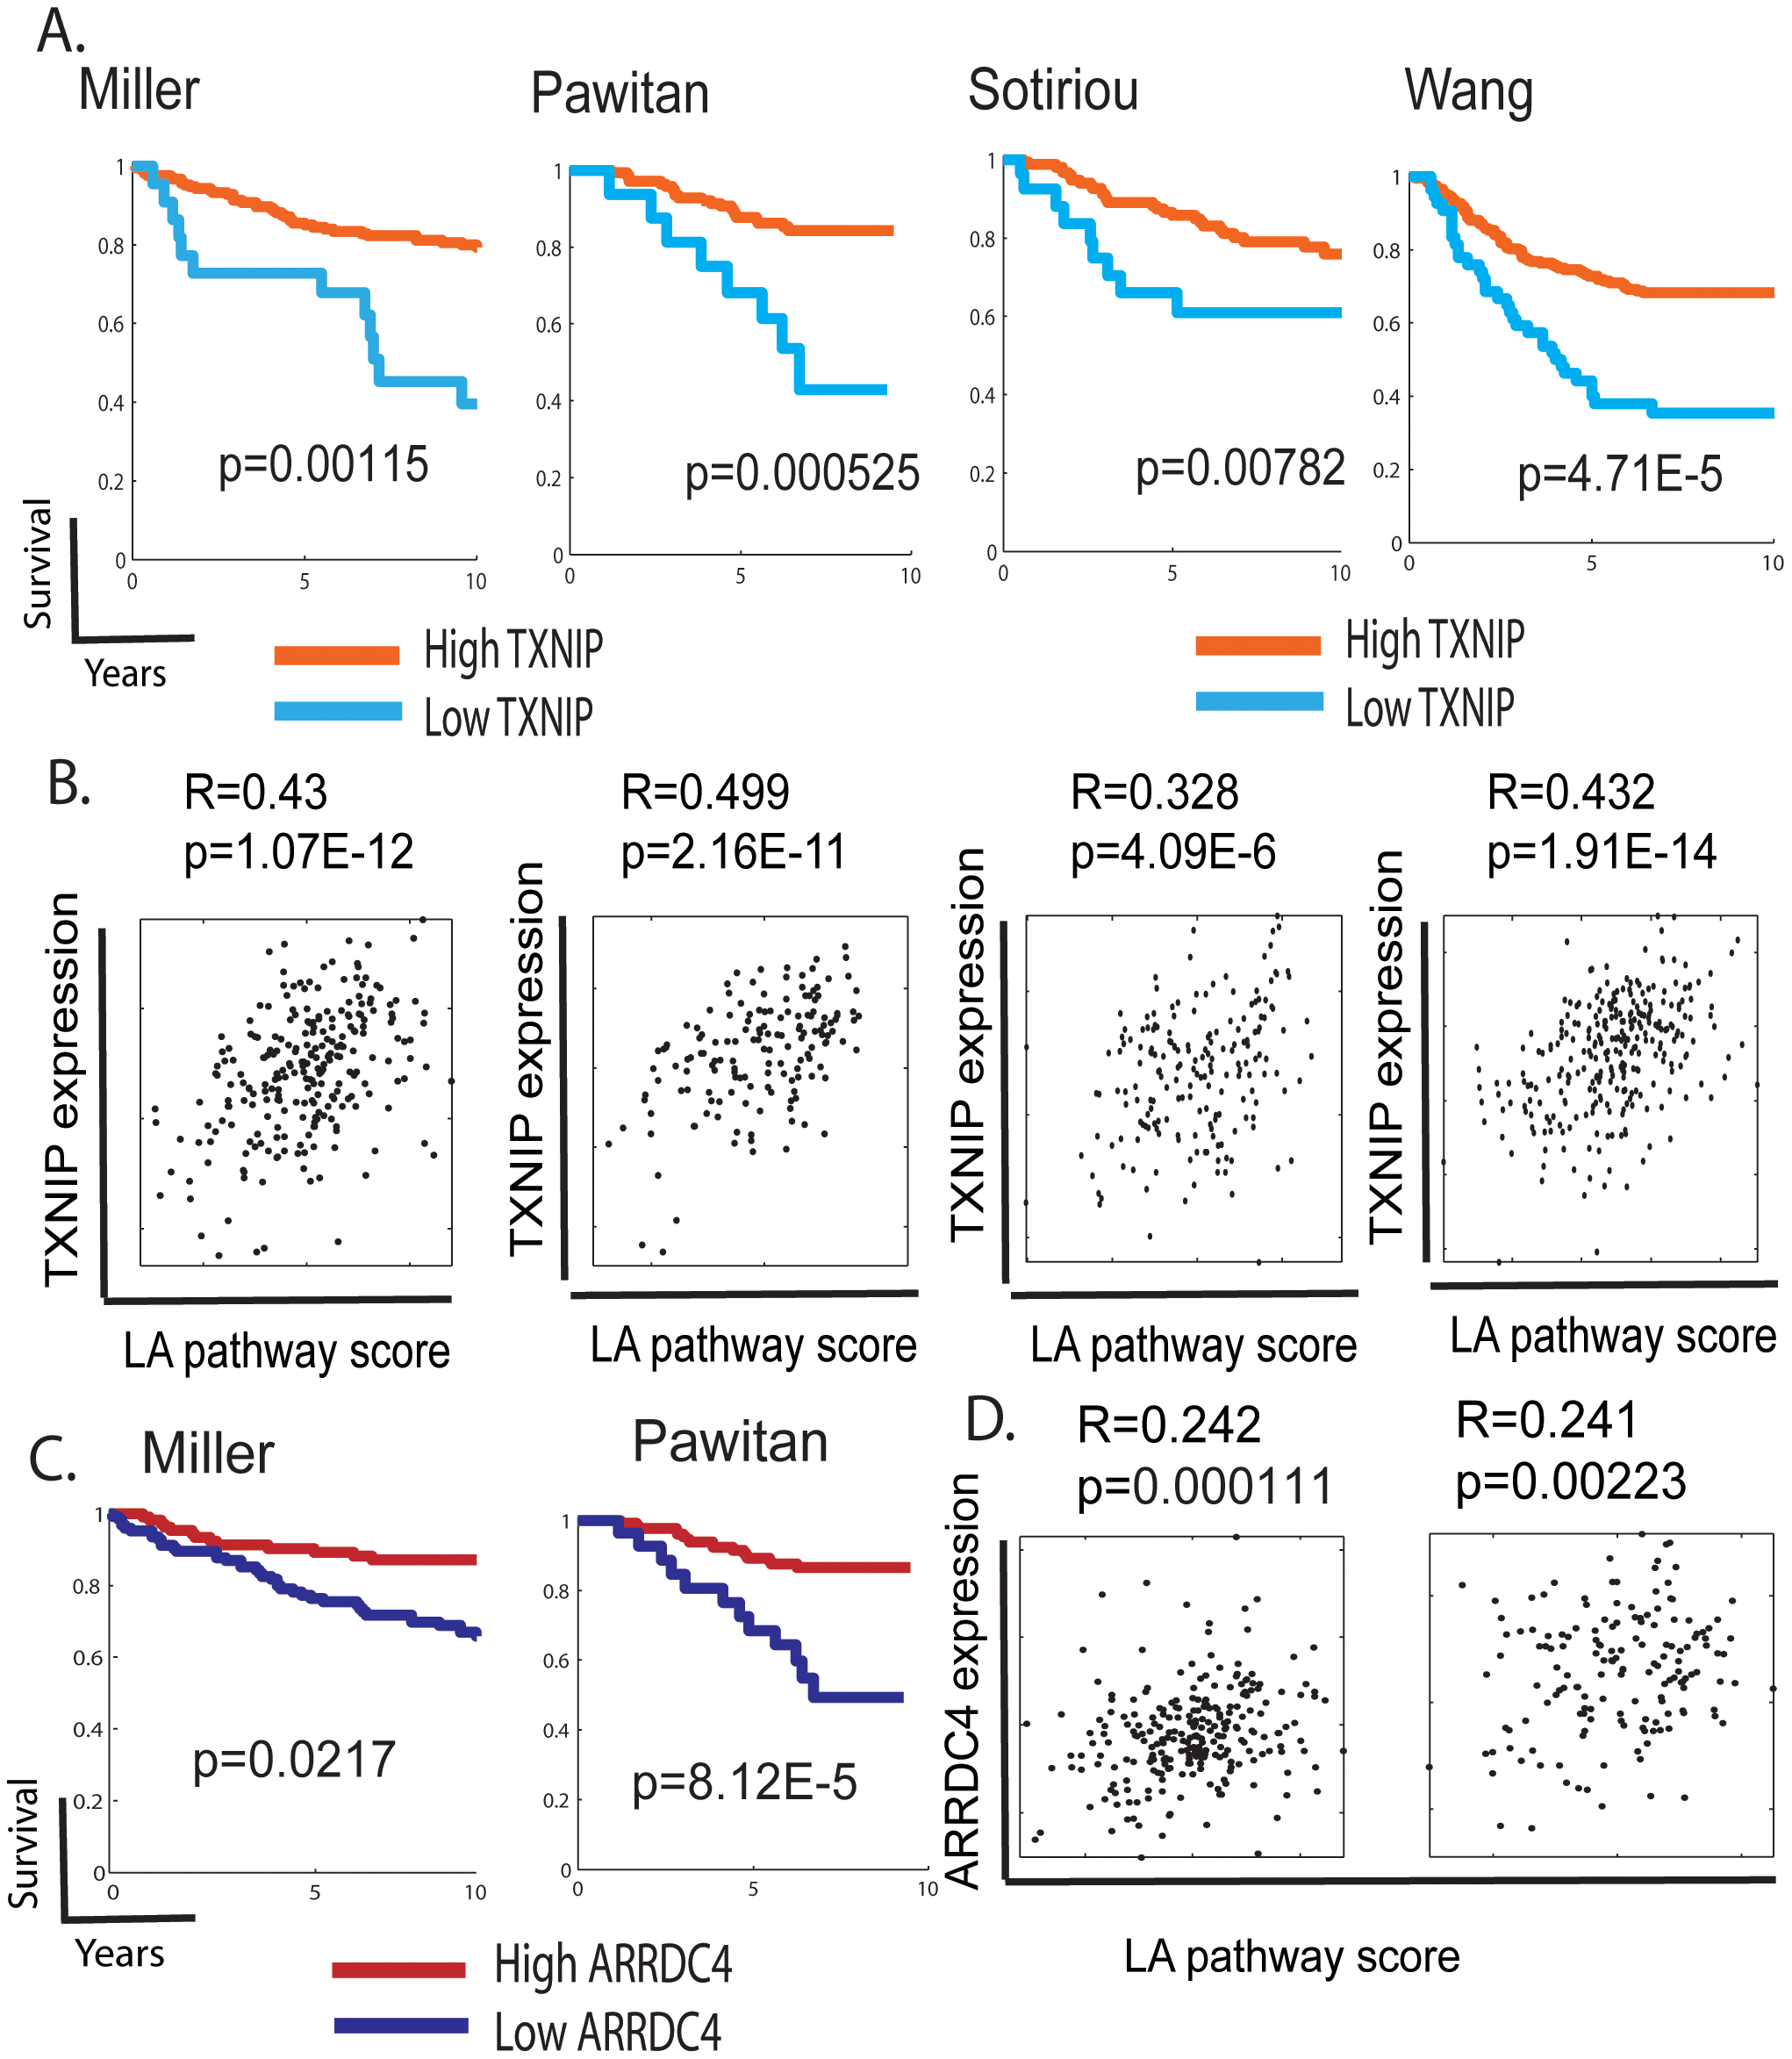 The expression of TXNIP, ARRDC4, and lactic acidosis pathways in human cancers.